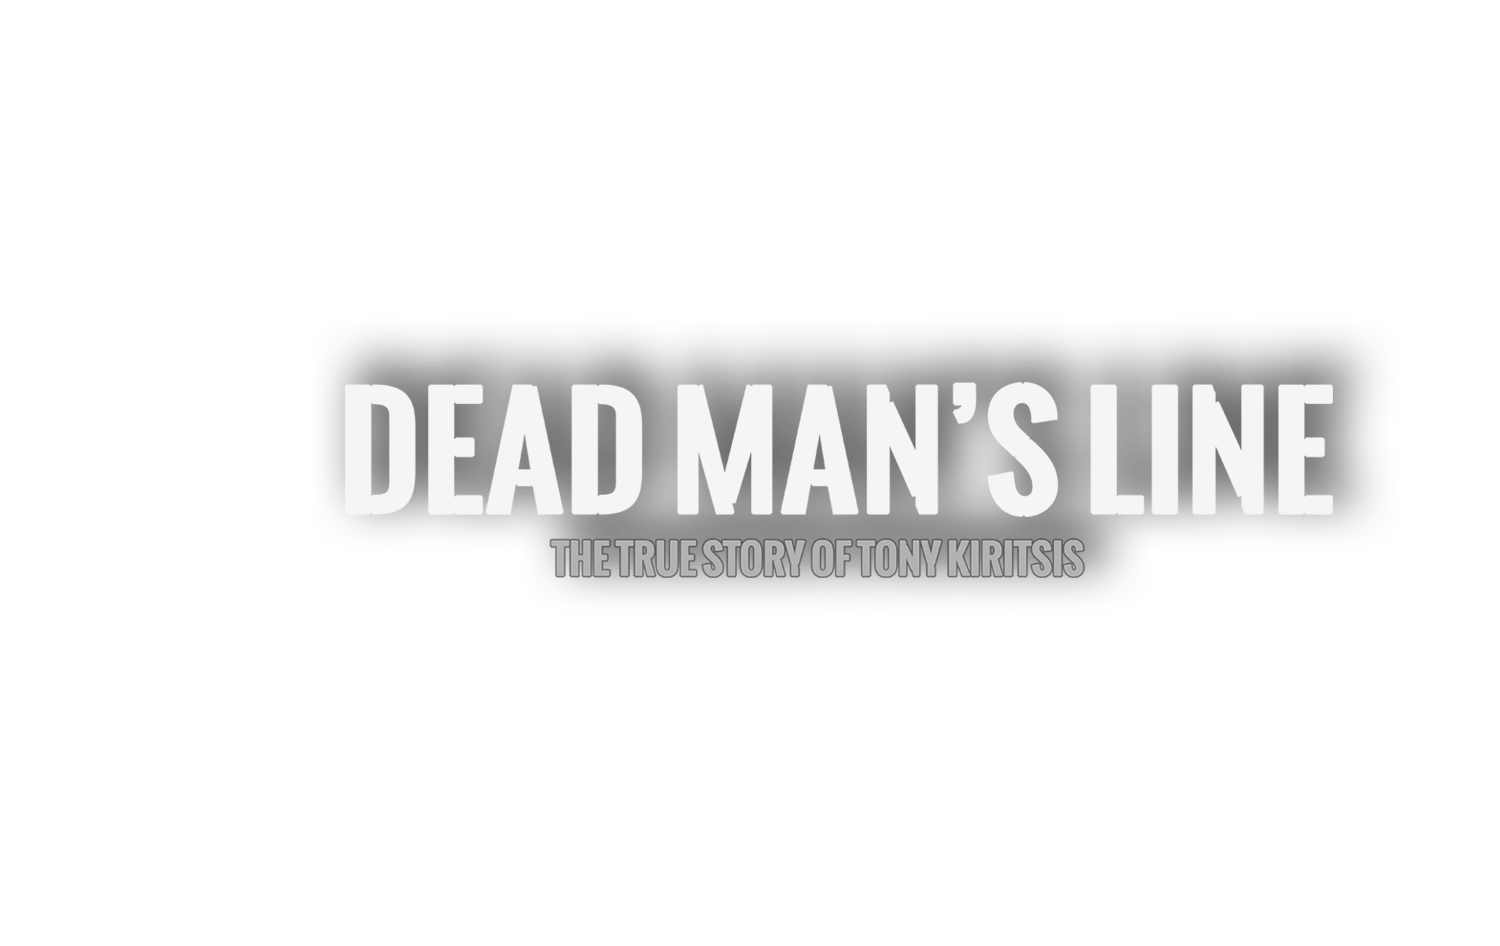 Dead Man's Line - The documentary about Tony Kiritsis